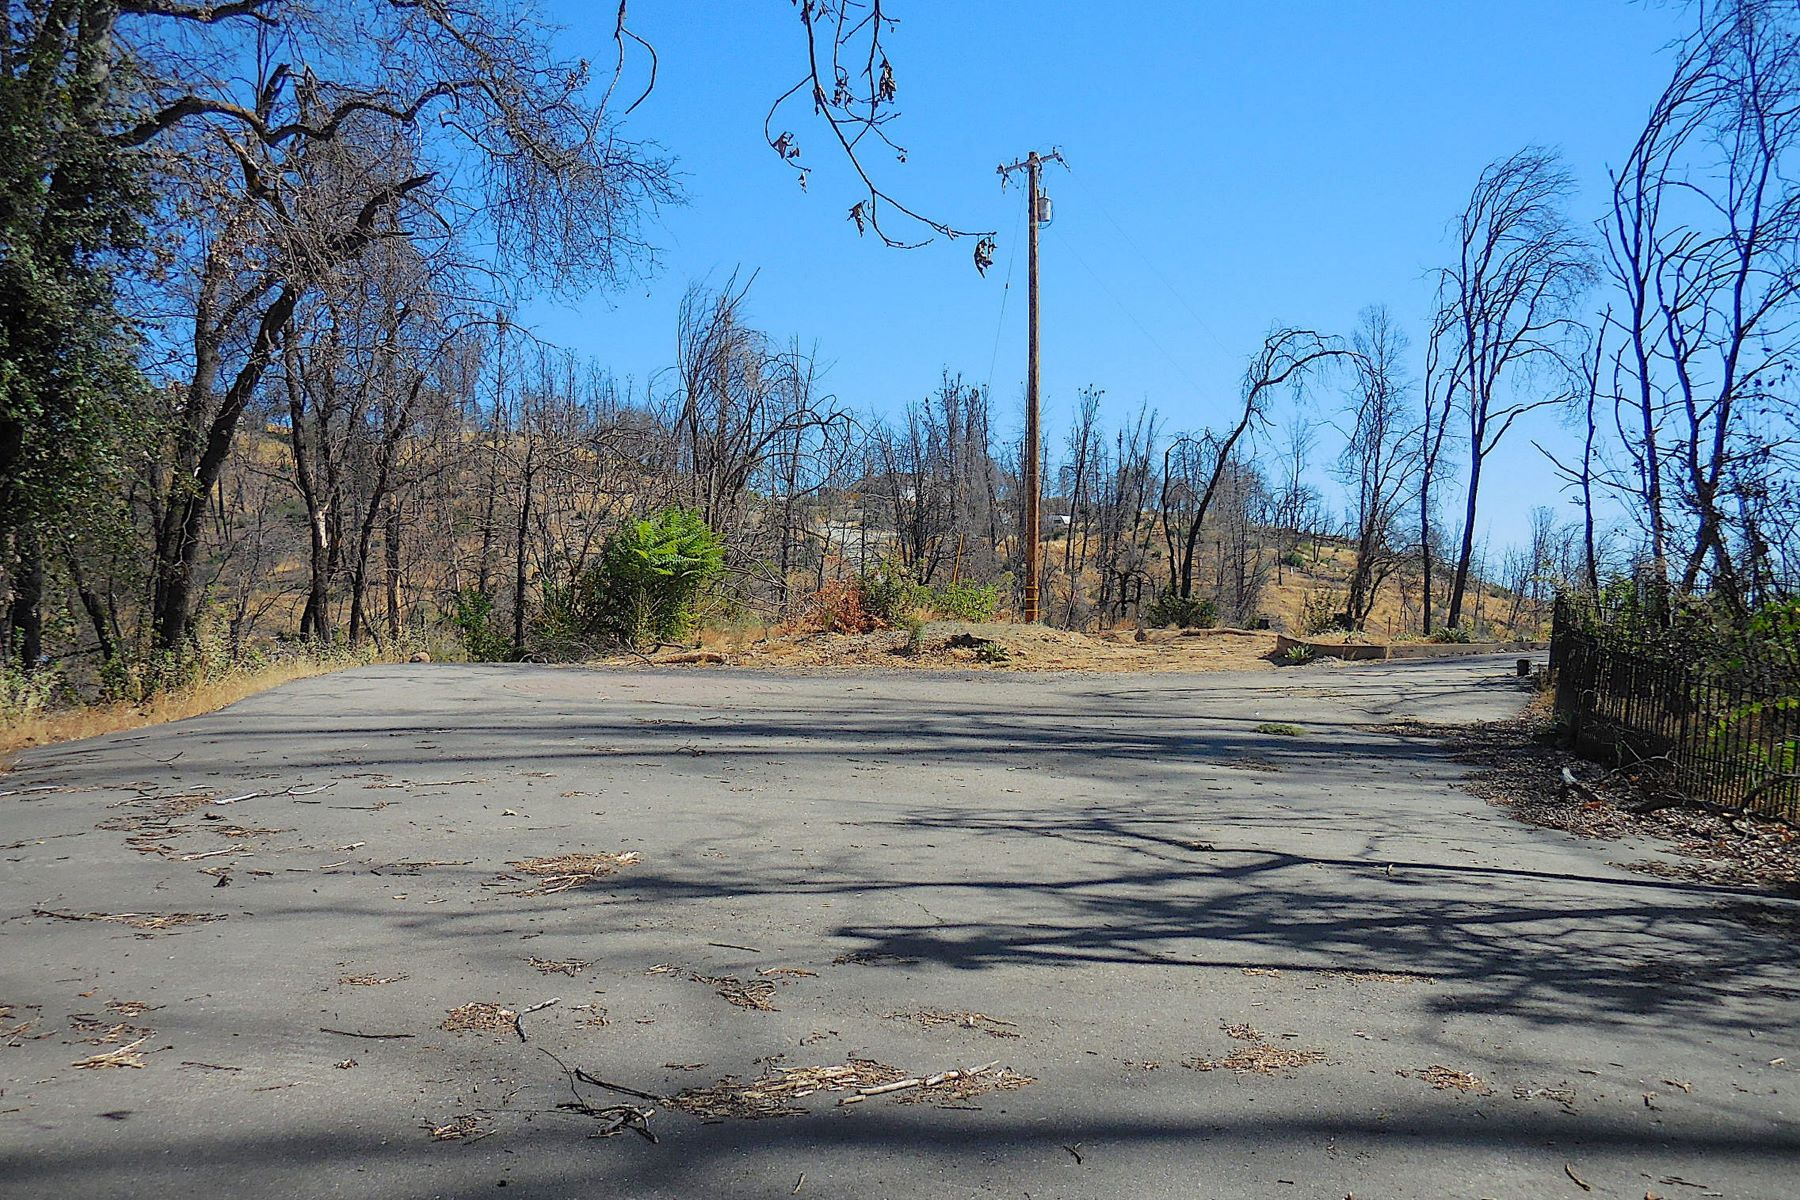 Land for Sale at Desireable Swasey Drive Location 9940 Swasey Drive Redding, California 96001 United States